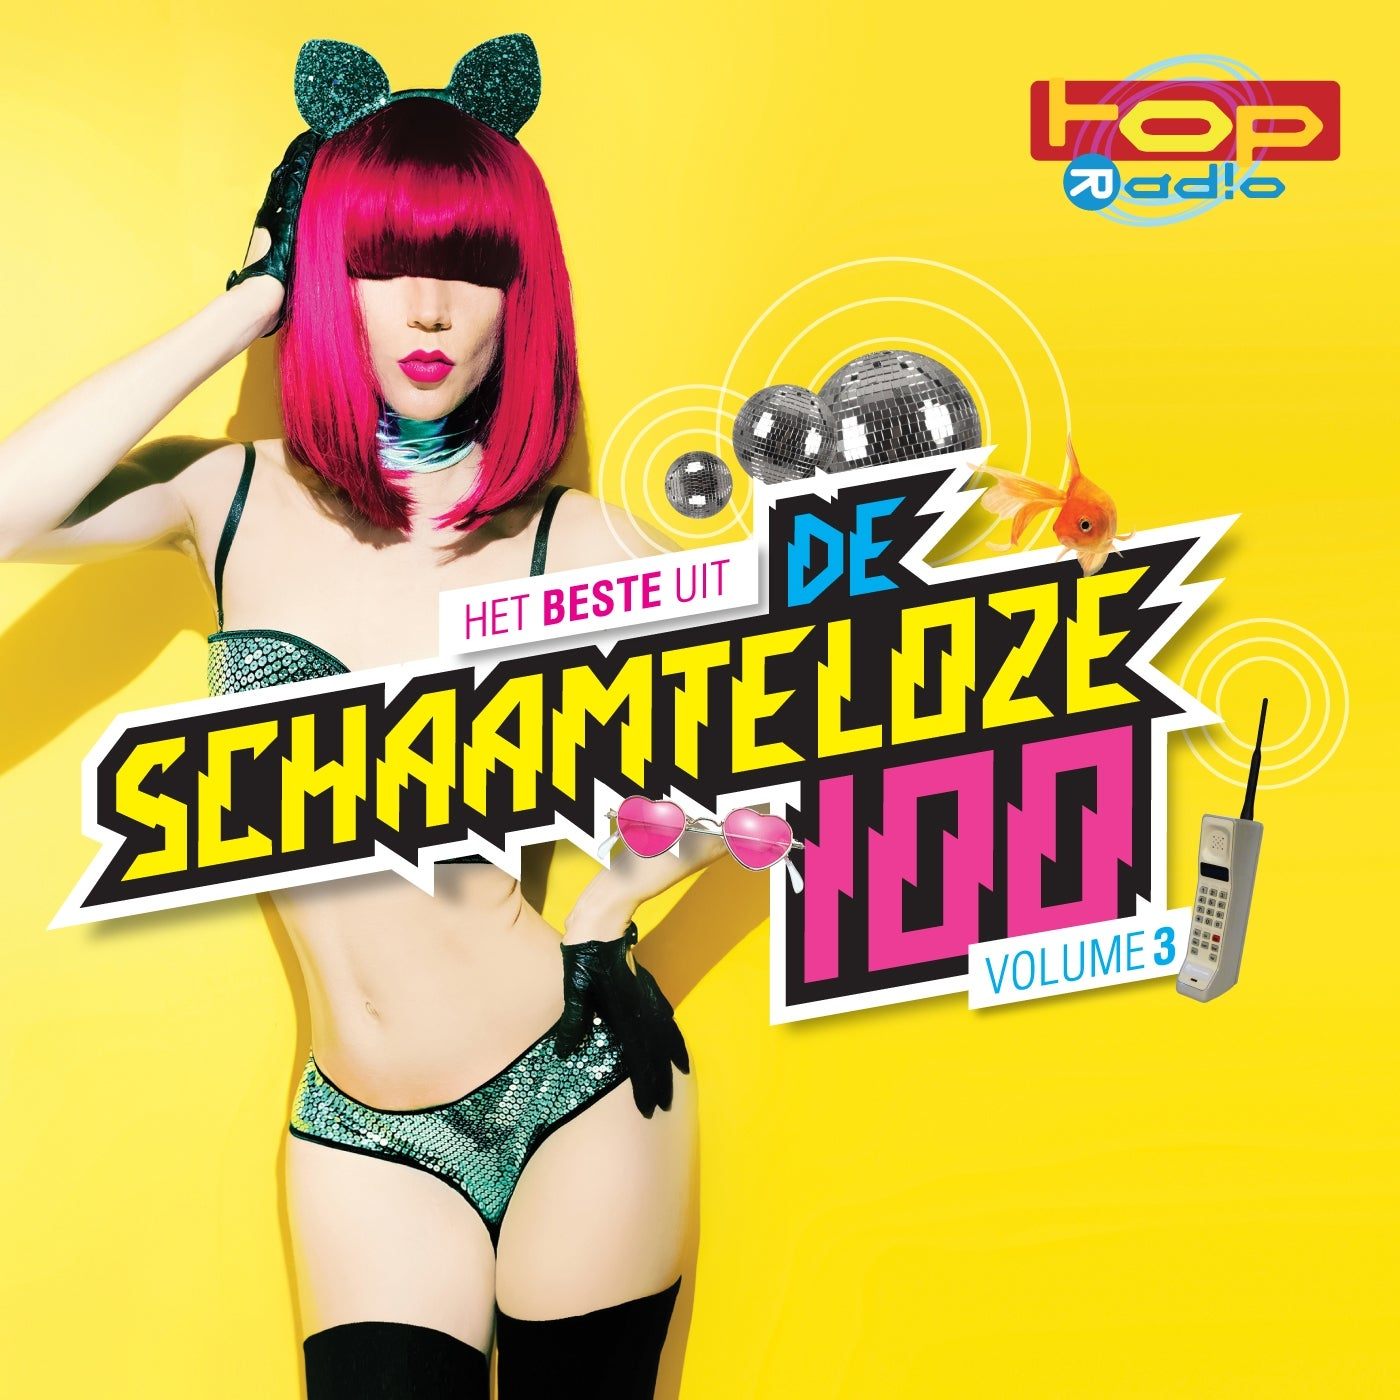 Image of Various Artists - TOPradio - De Schaamteloze 100 - Volume 3 (4CD)